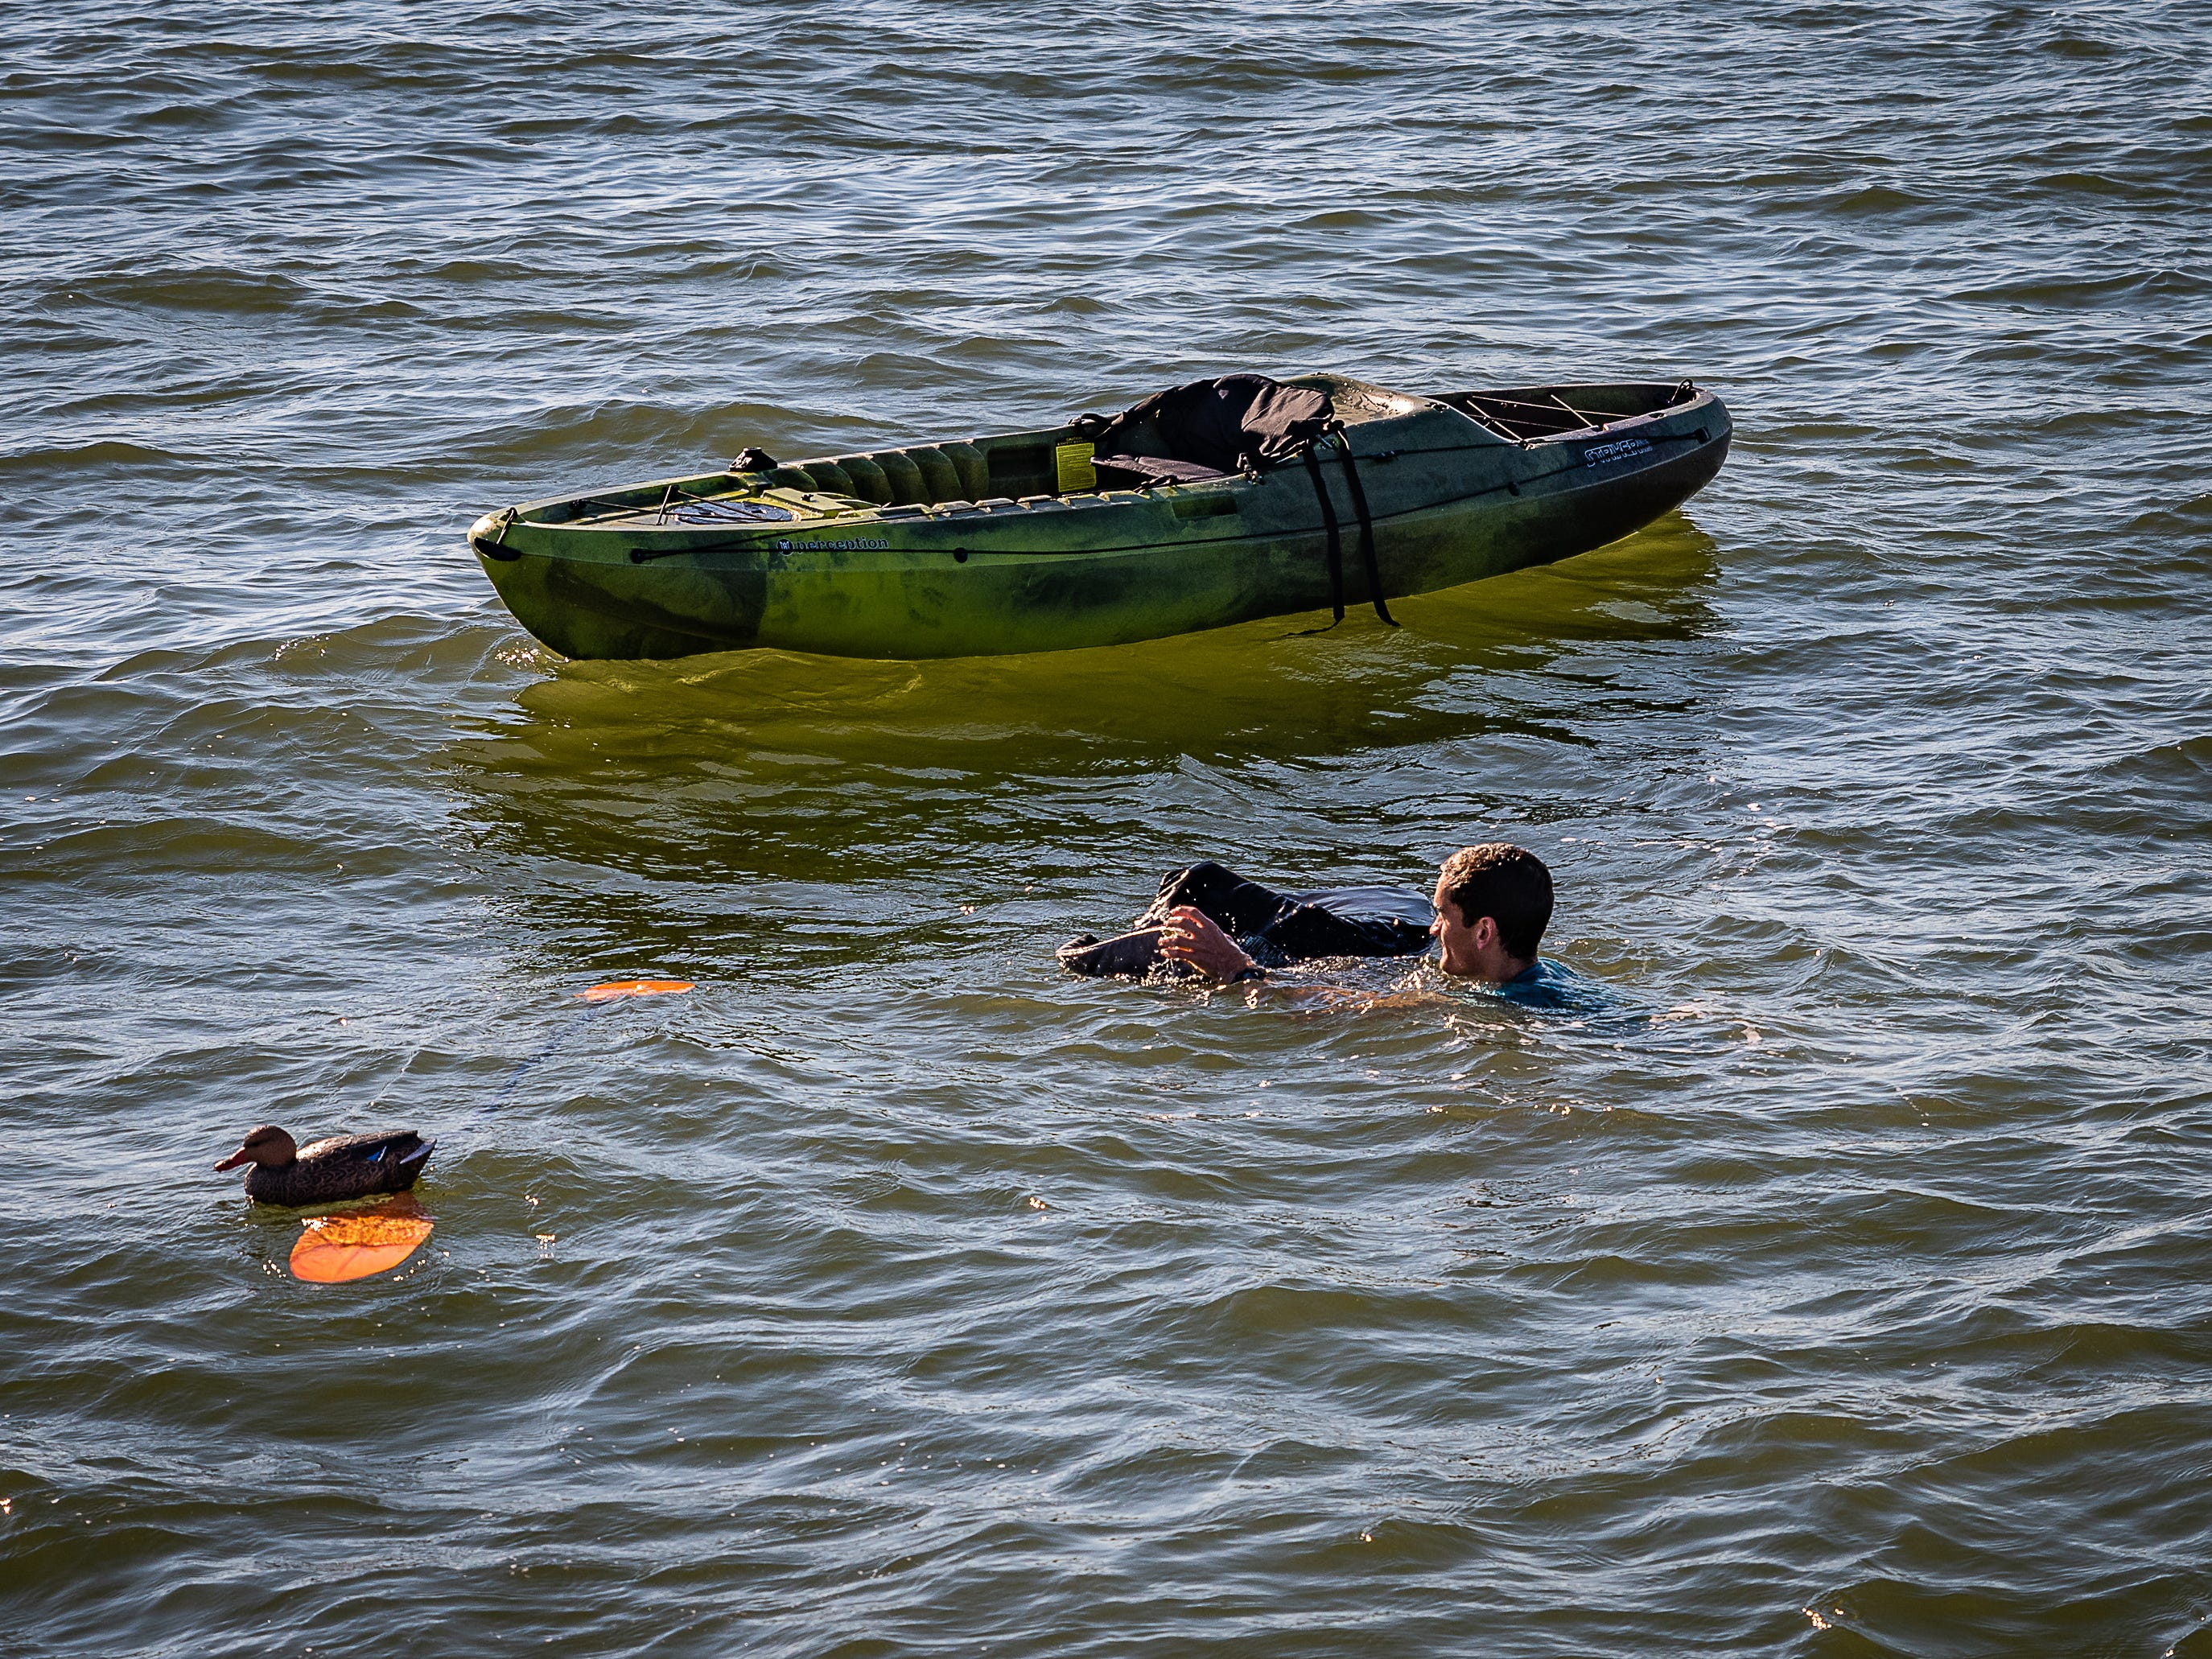 A U.S. Coast Guard member demonstrates survival techniques on Tuesday, Oct. 30, 2018 in Cape Charles, Virginia.